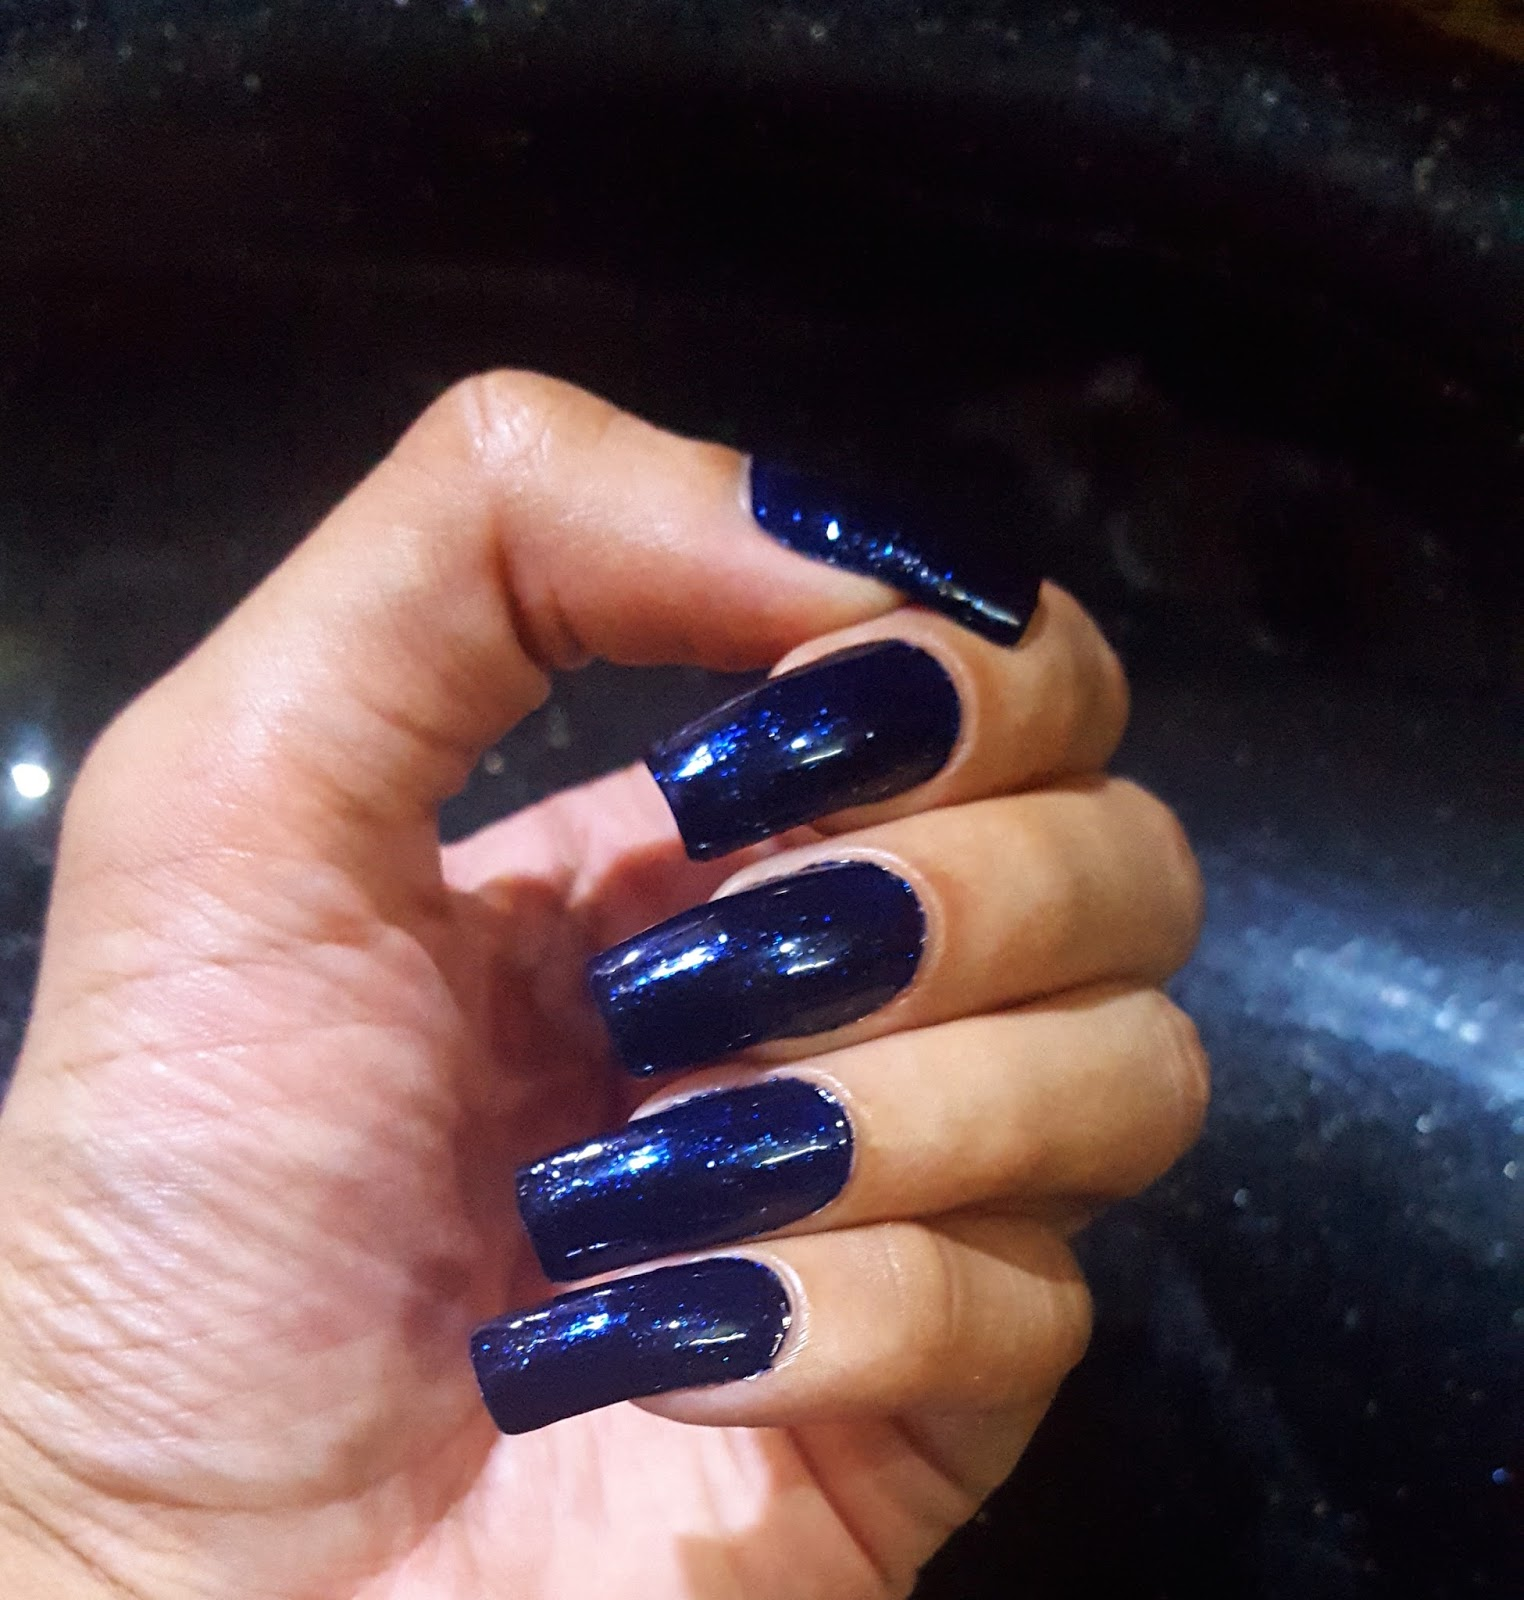 Ahoy! Nails!!: Kiko Power Pro Nail Lacquer - 073 Swatch and Review